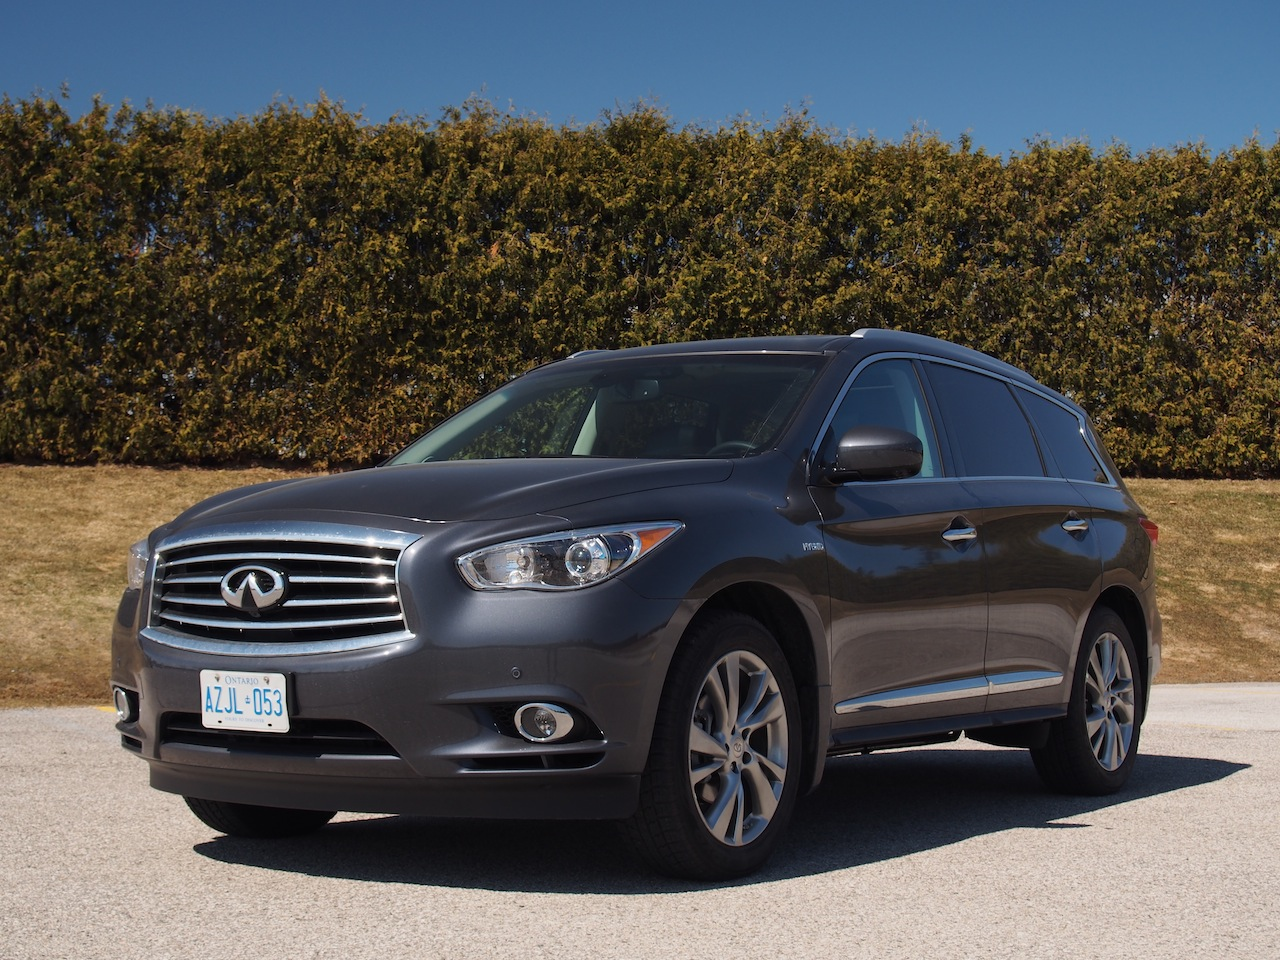 2014 infiniti qx60 hybrid review cars photos test drives and reviews canadian auto review. Black Bedroom Furniture Sets. Home Design Ideas